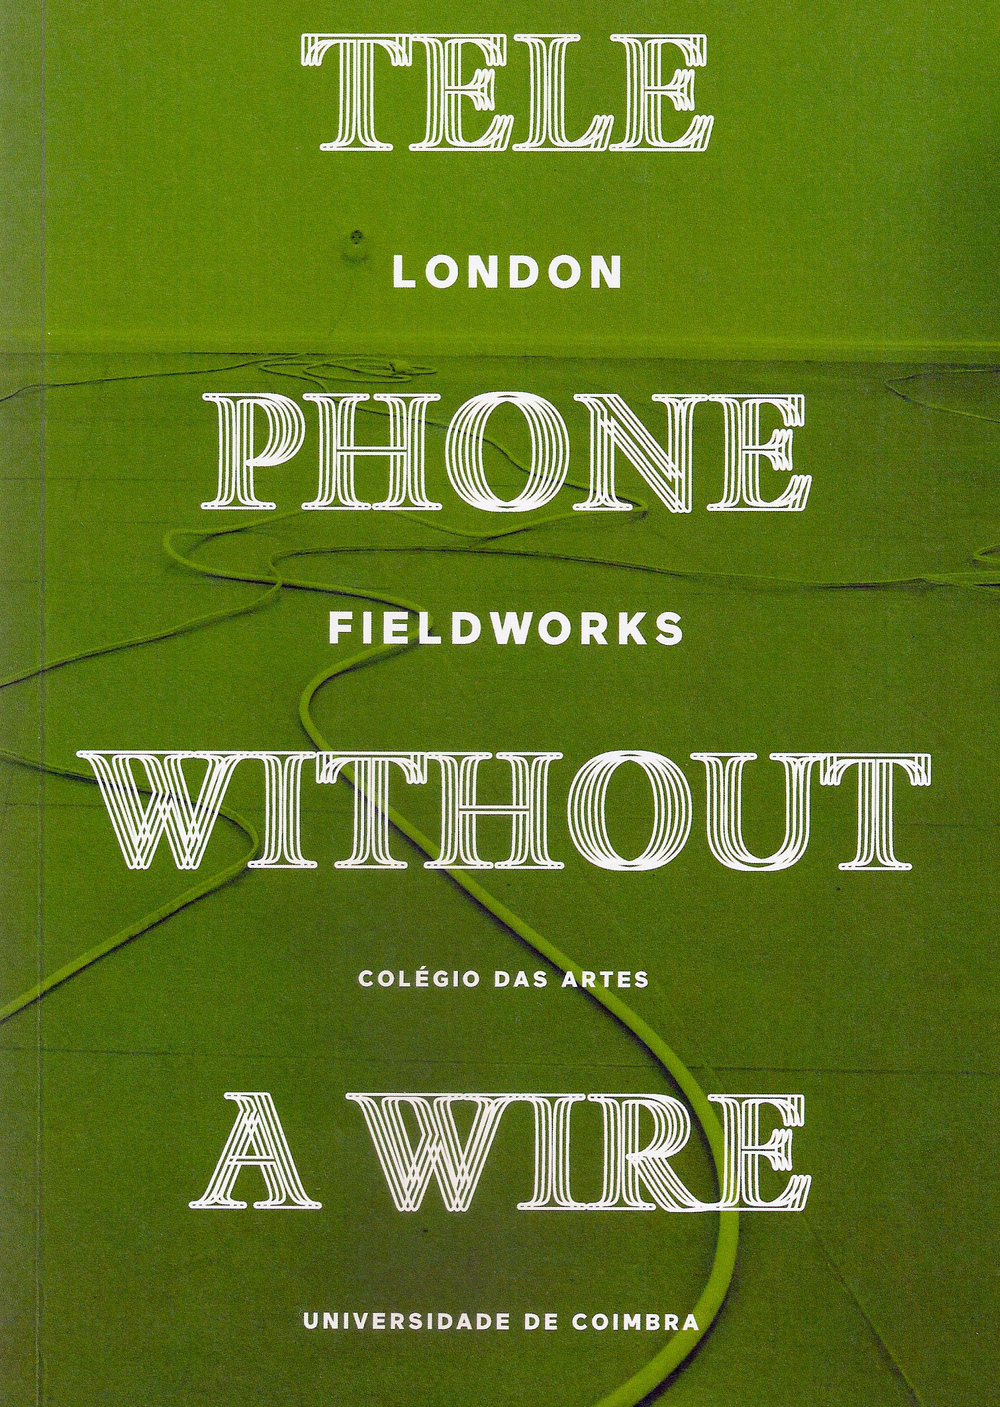 2016 - Catalog - TelePhone Without A Wire, by London FielworksExhibition organised by António Olaio, José Maçãs de Carvalho. Catalog design by Bruna de Sousa. Coimbra University, College of Arts, Ground Floor, 2016ISBN 978-989-99717-6-9